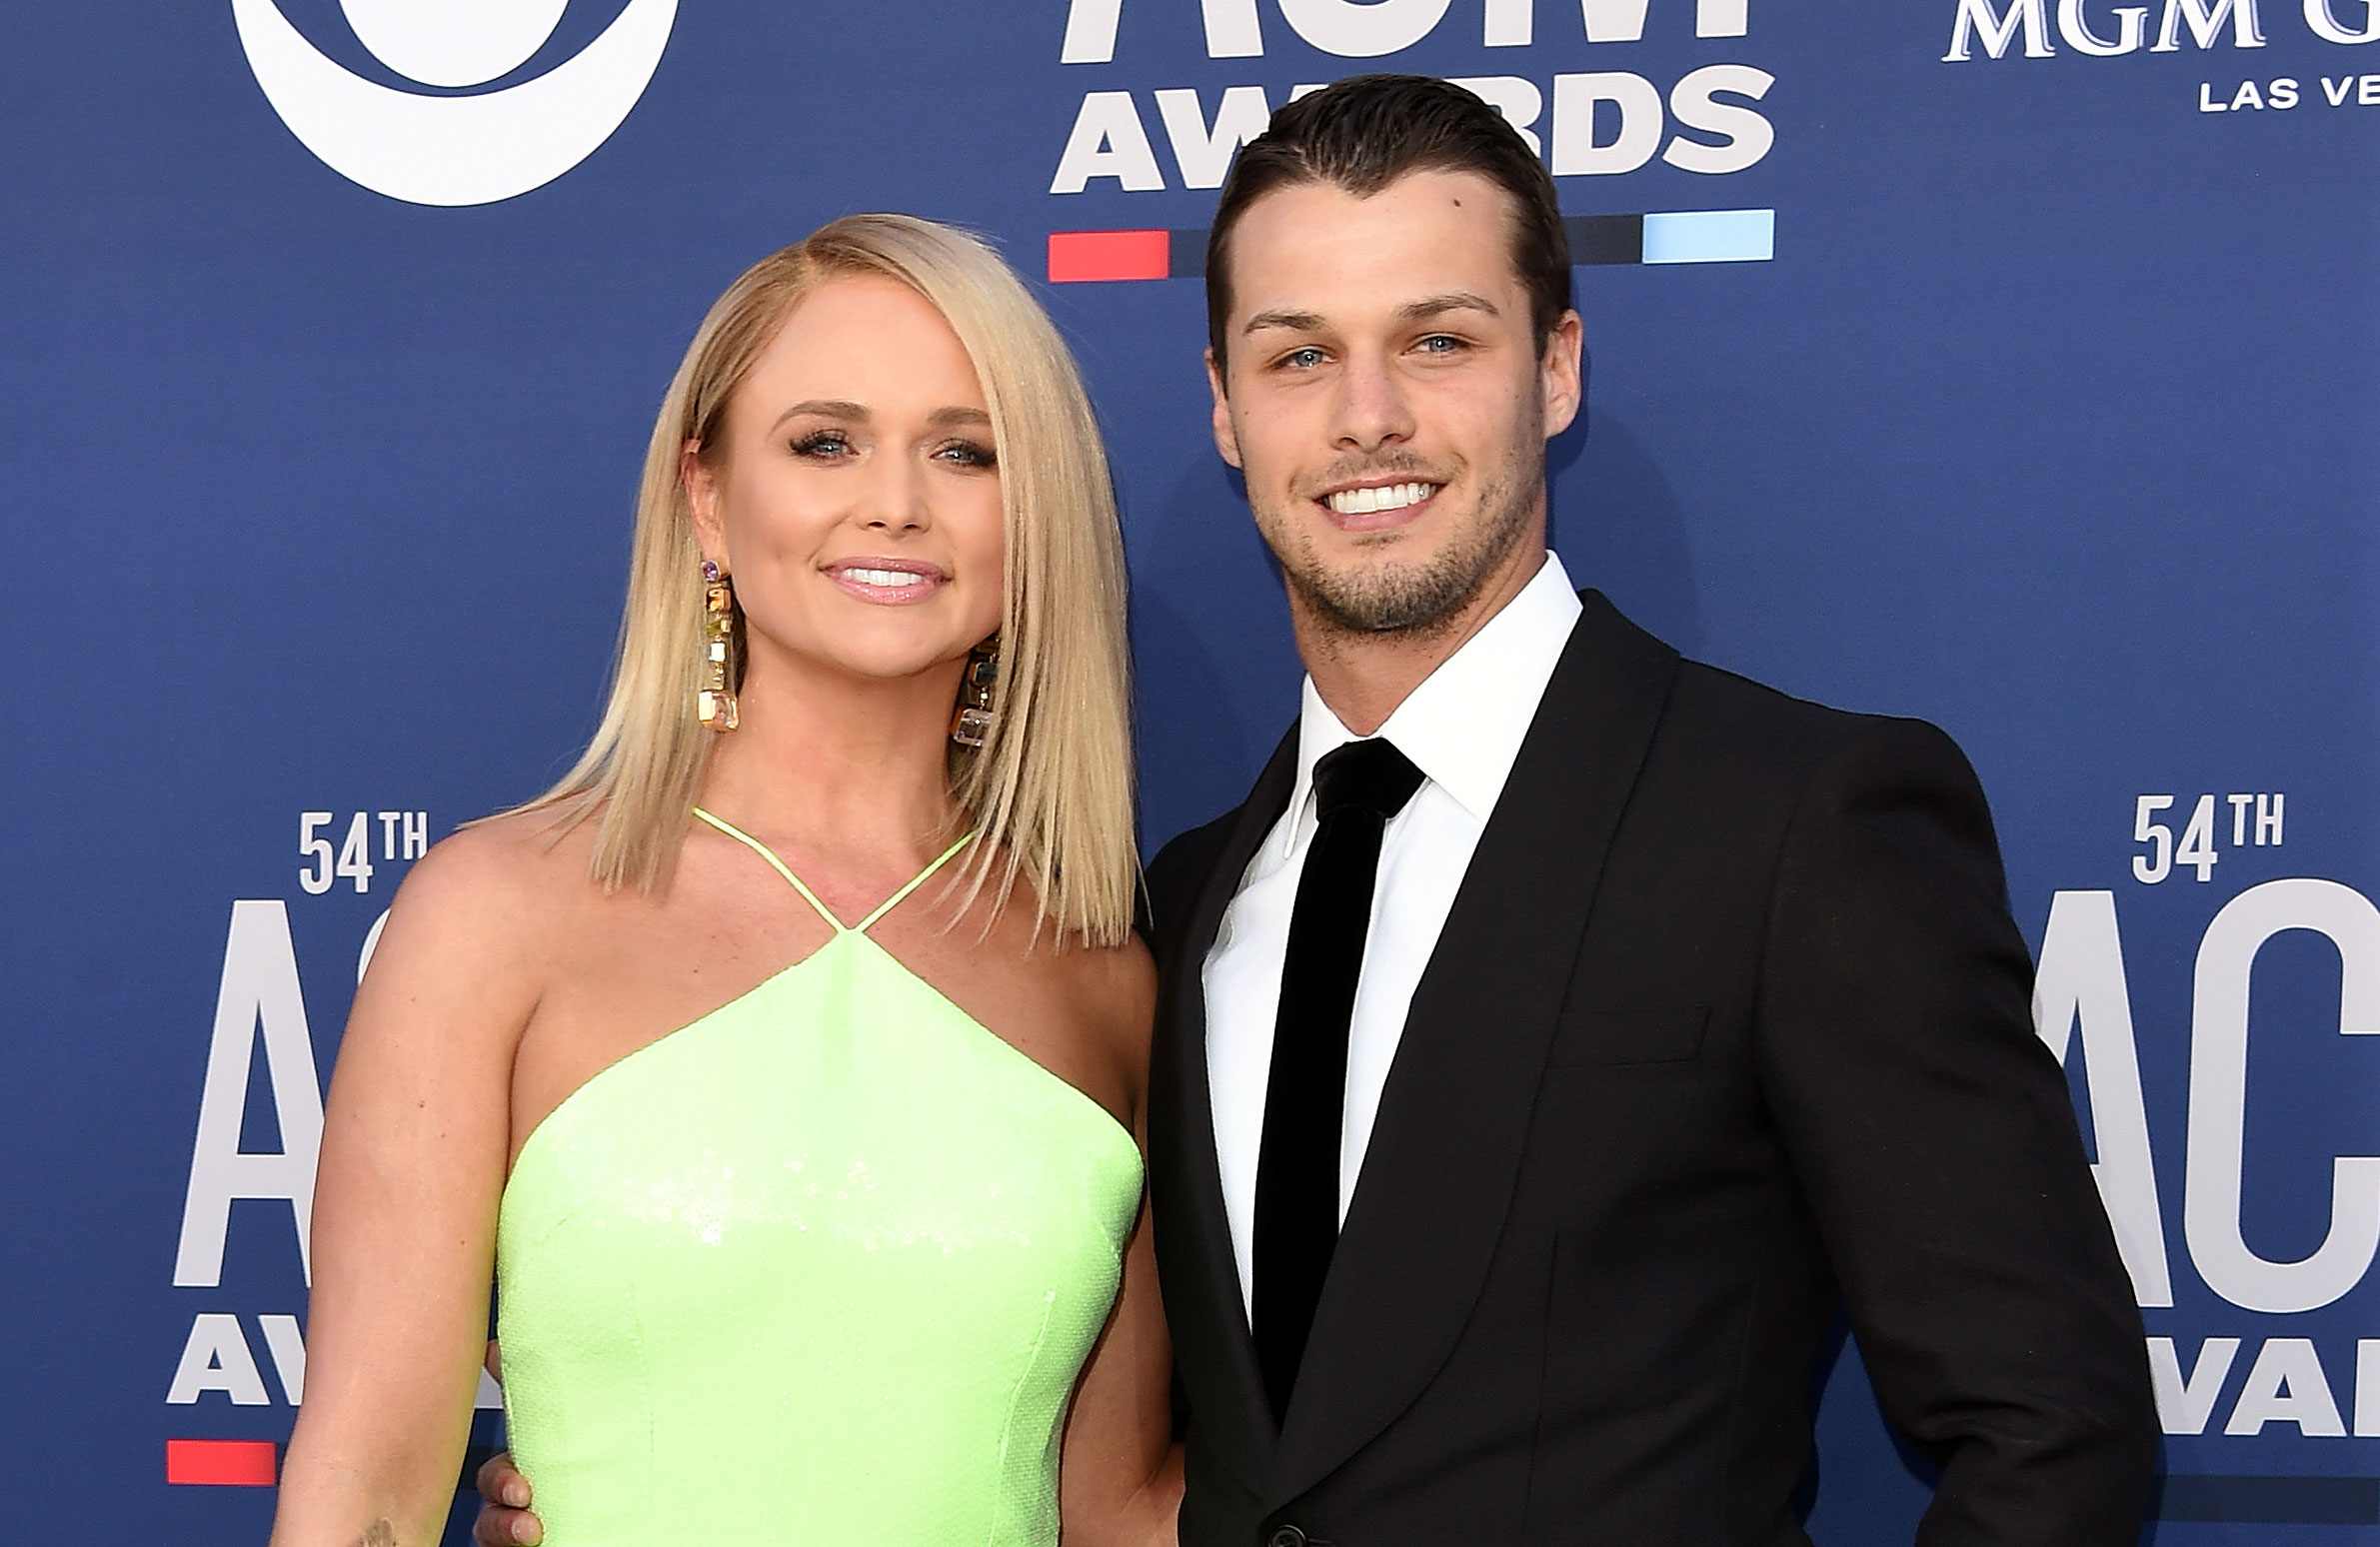 Miranda Lambert Shares Adorable Photo of Husband Brendan McLoughlin Posing With Puppies 54th Academy of Country Music Awards - Miranda Lambert and Brendan McLoughlin attend the 54th Academy of Country Music Awards at MGM Grand Garden Arena on April 07, 2019 in Las Vegas, Nevada.